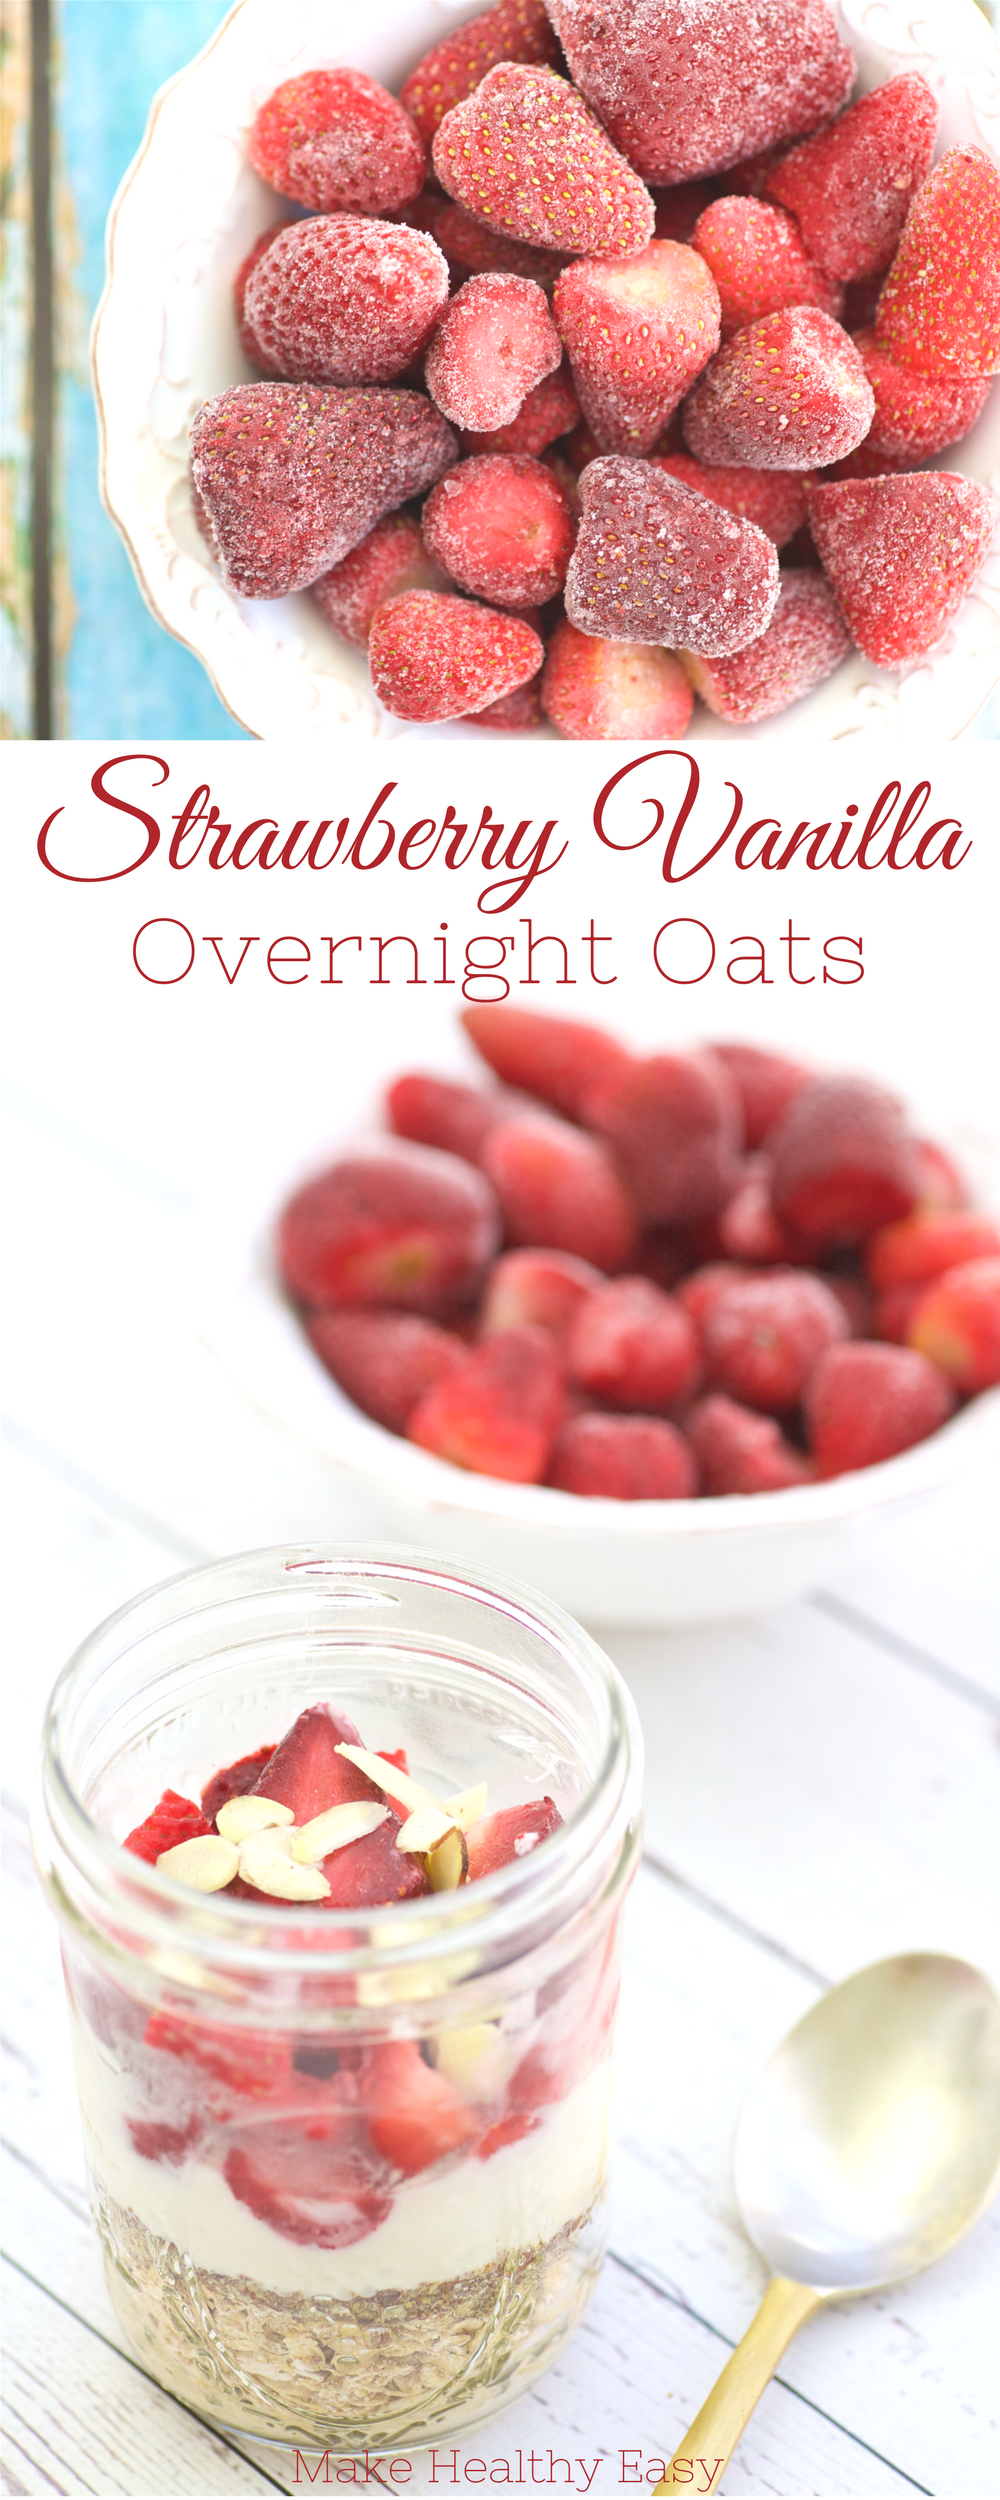 Vanilla Overnight Oats Strawberry Vanilla Overnight Oats are easy to make ahead and delicious to enjoy for any meal on the go. These oats are filling thanks to the fiber and protein in Greek yogurt.Strawberry Vanilla Overnight Oats are easy to make ahead and delicious to enjoy for any meal on the go. These oats are filling thanks to the fiber and protein in...